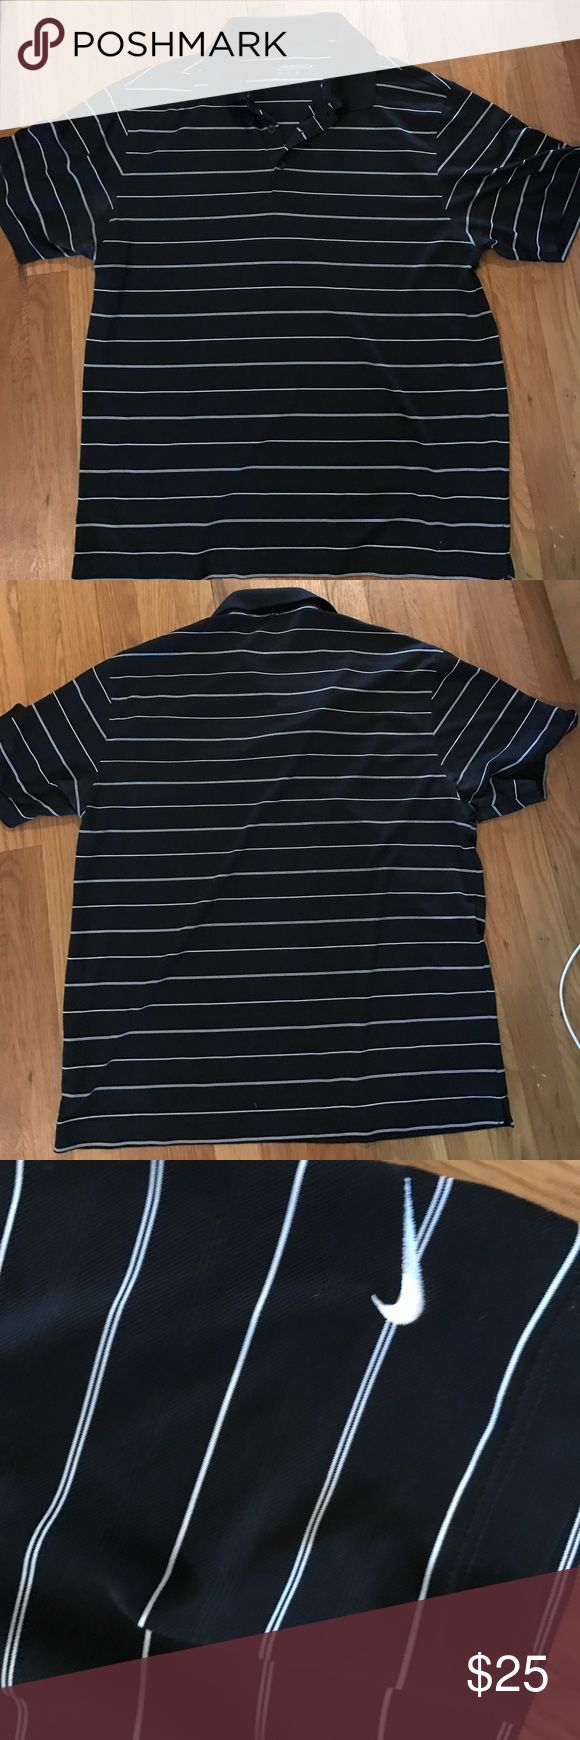 Nike polo shirt In great condition. Nike Shirts Polos